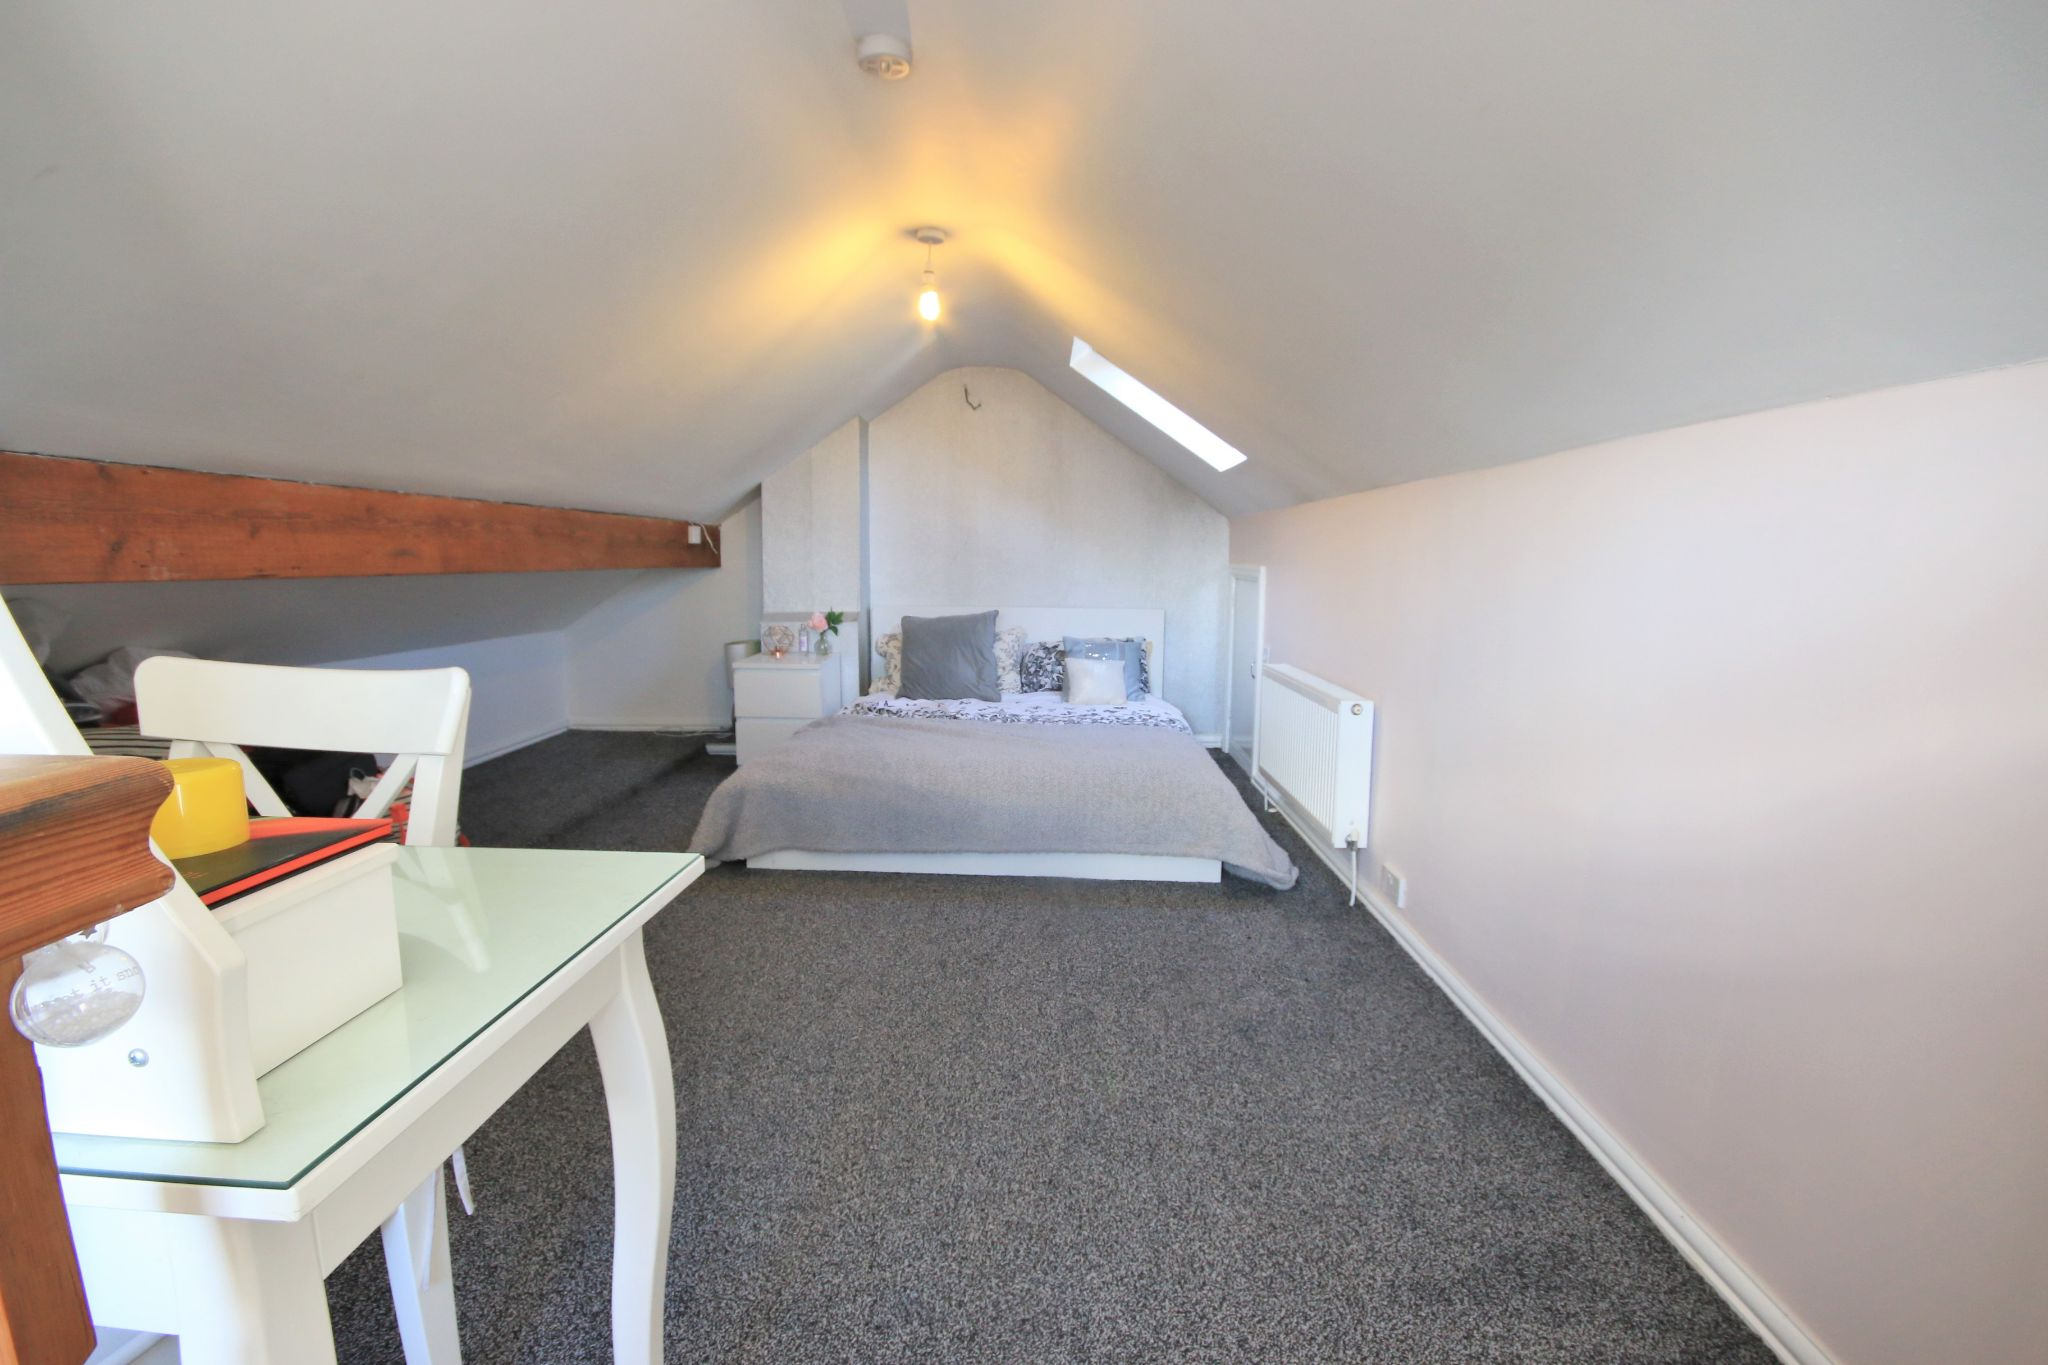 3 Bedroom Semi-detached House For Sale - Photograph 22